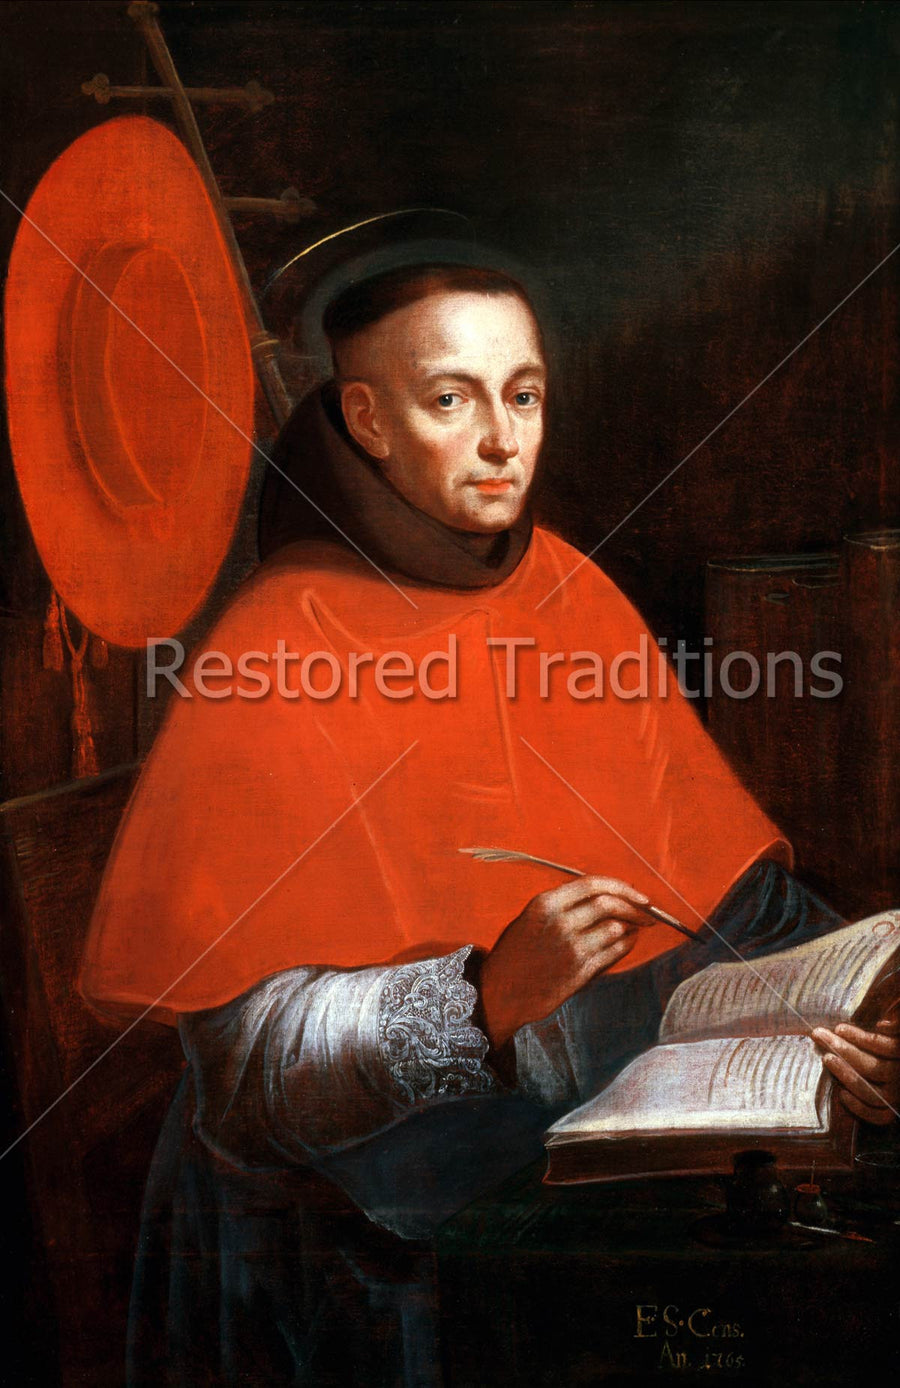 St. Bonaventure, Doctor of the Church